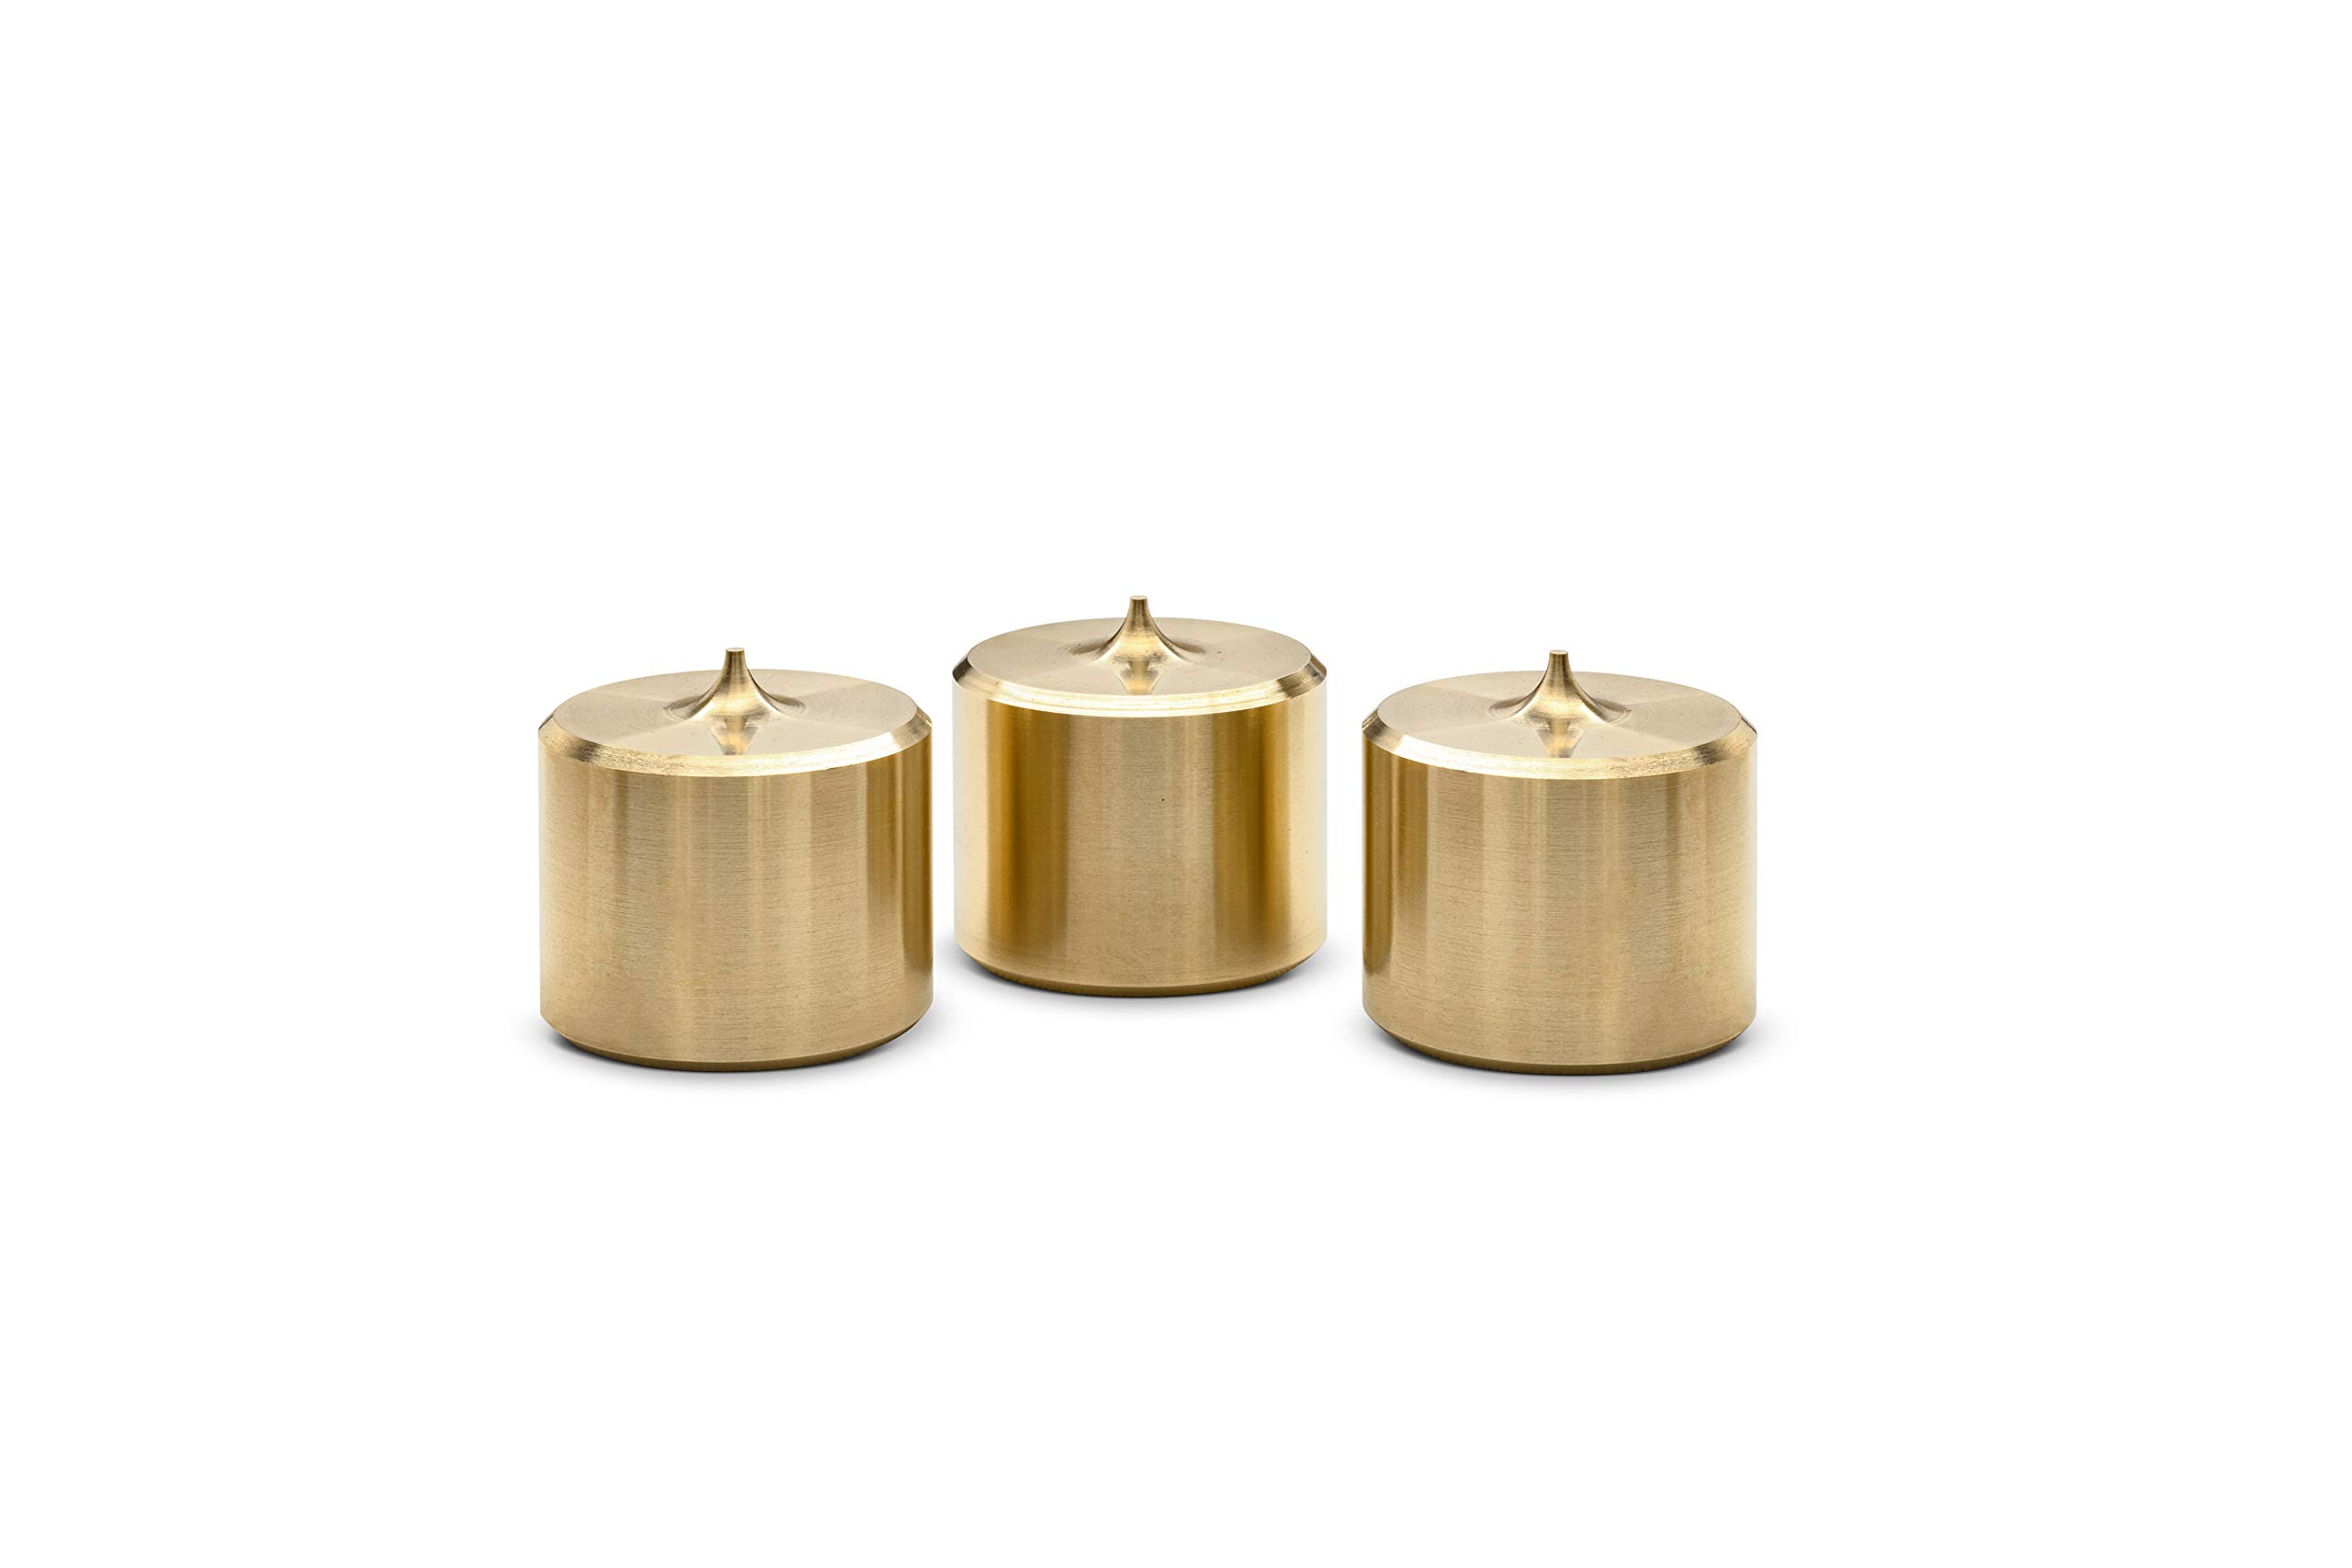 Butcher Block Acoustics PurePoint️ Brass Footers - Set of 3 (1⅝'' Dia X 1½'' Tall) by PurePoint ️ Brass Footers